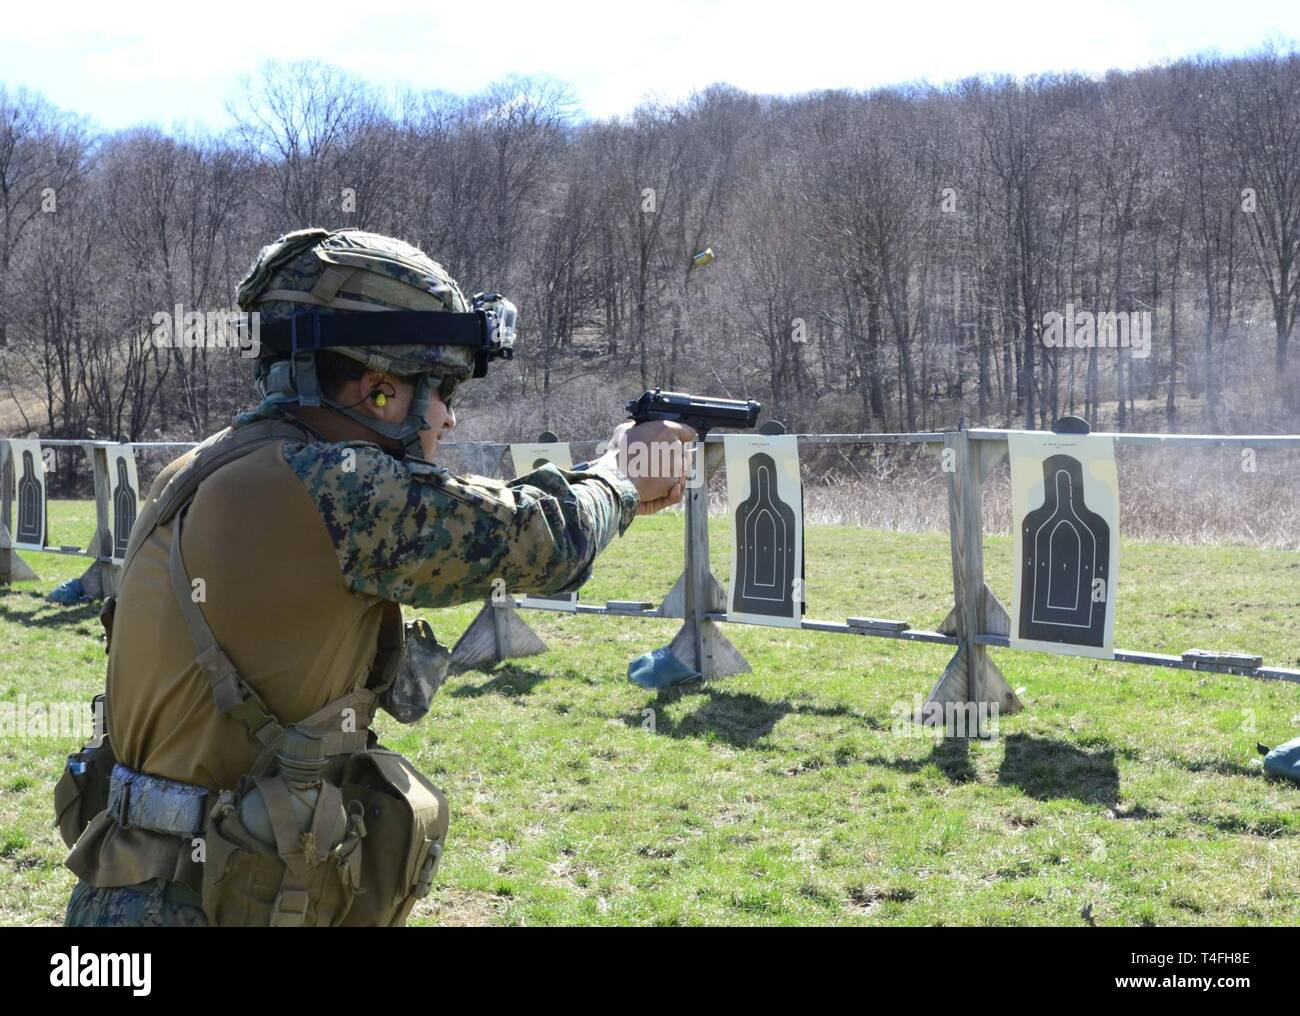 A Chilean army cadet from the Bernardo O'Higgins Military School shoots paper targets during an M9 pistol range at the U.S. Military Academy, West Point, New York, in preparation for the 51st Sandhurst Military Skills Competition, April 12-13. Sandhurst, a premier international military academy competition which began in 1967, is a two-day, approximately 30-mile course filled with individual and squad-based events designed to promote military excellence of future leaders across the world. This year, 49 teams from more than a dozen countries will participate in the competition, with two first-t Stock Photo